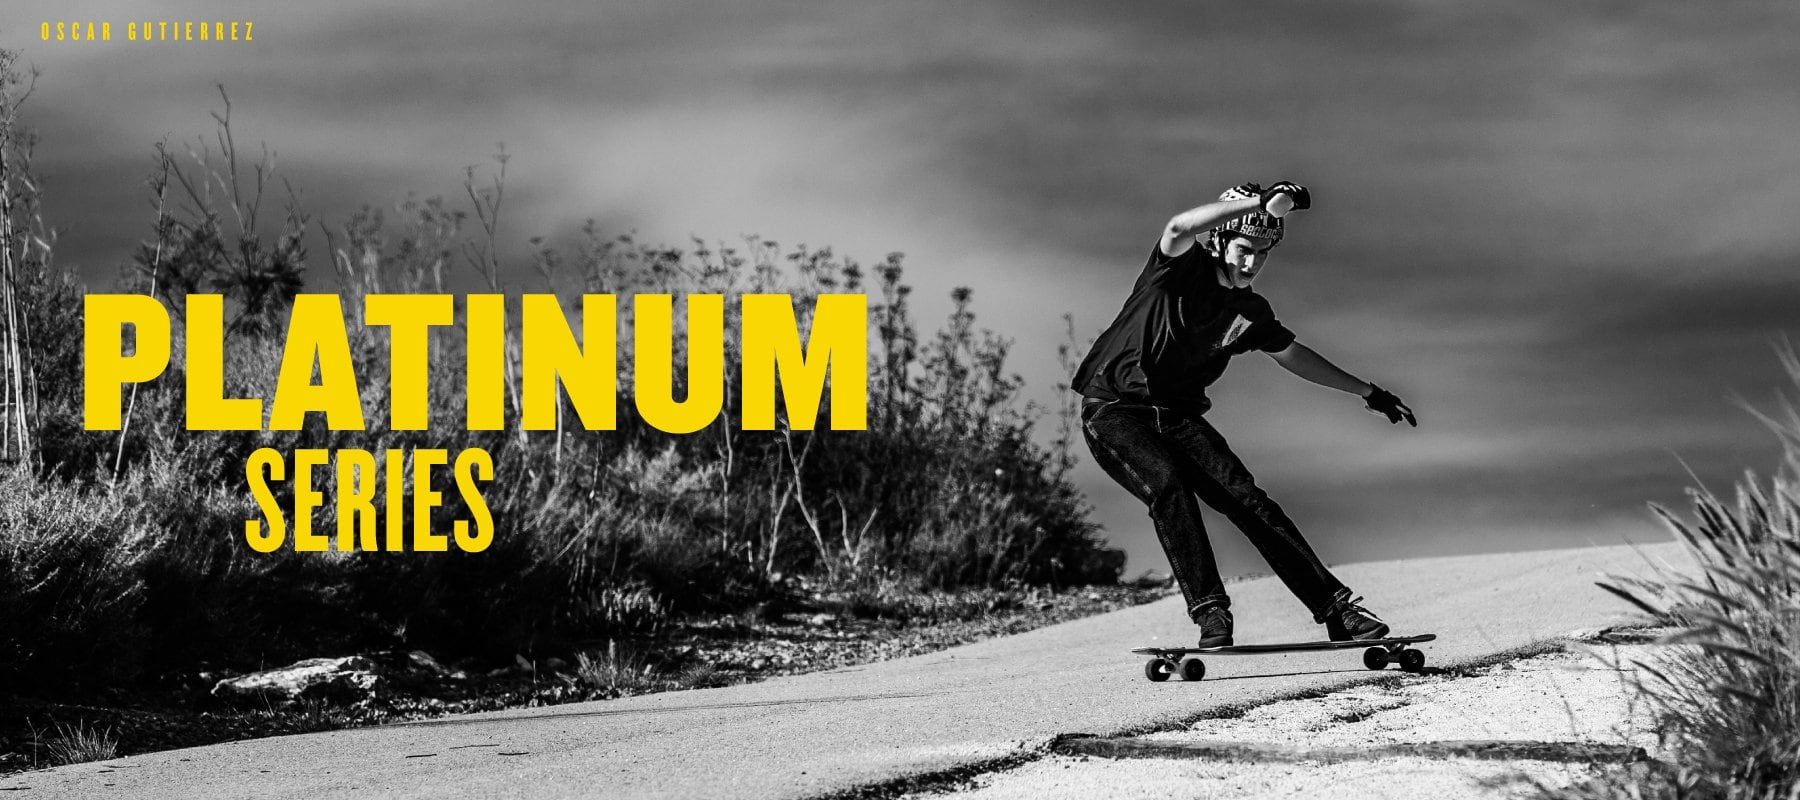 SECTOR 9 Skateboards Platinum series